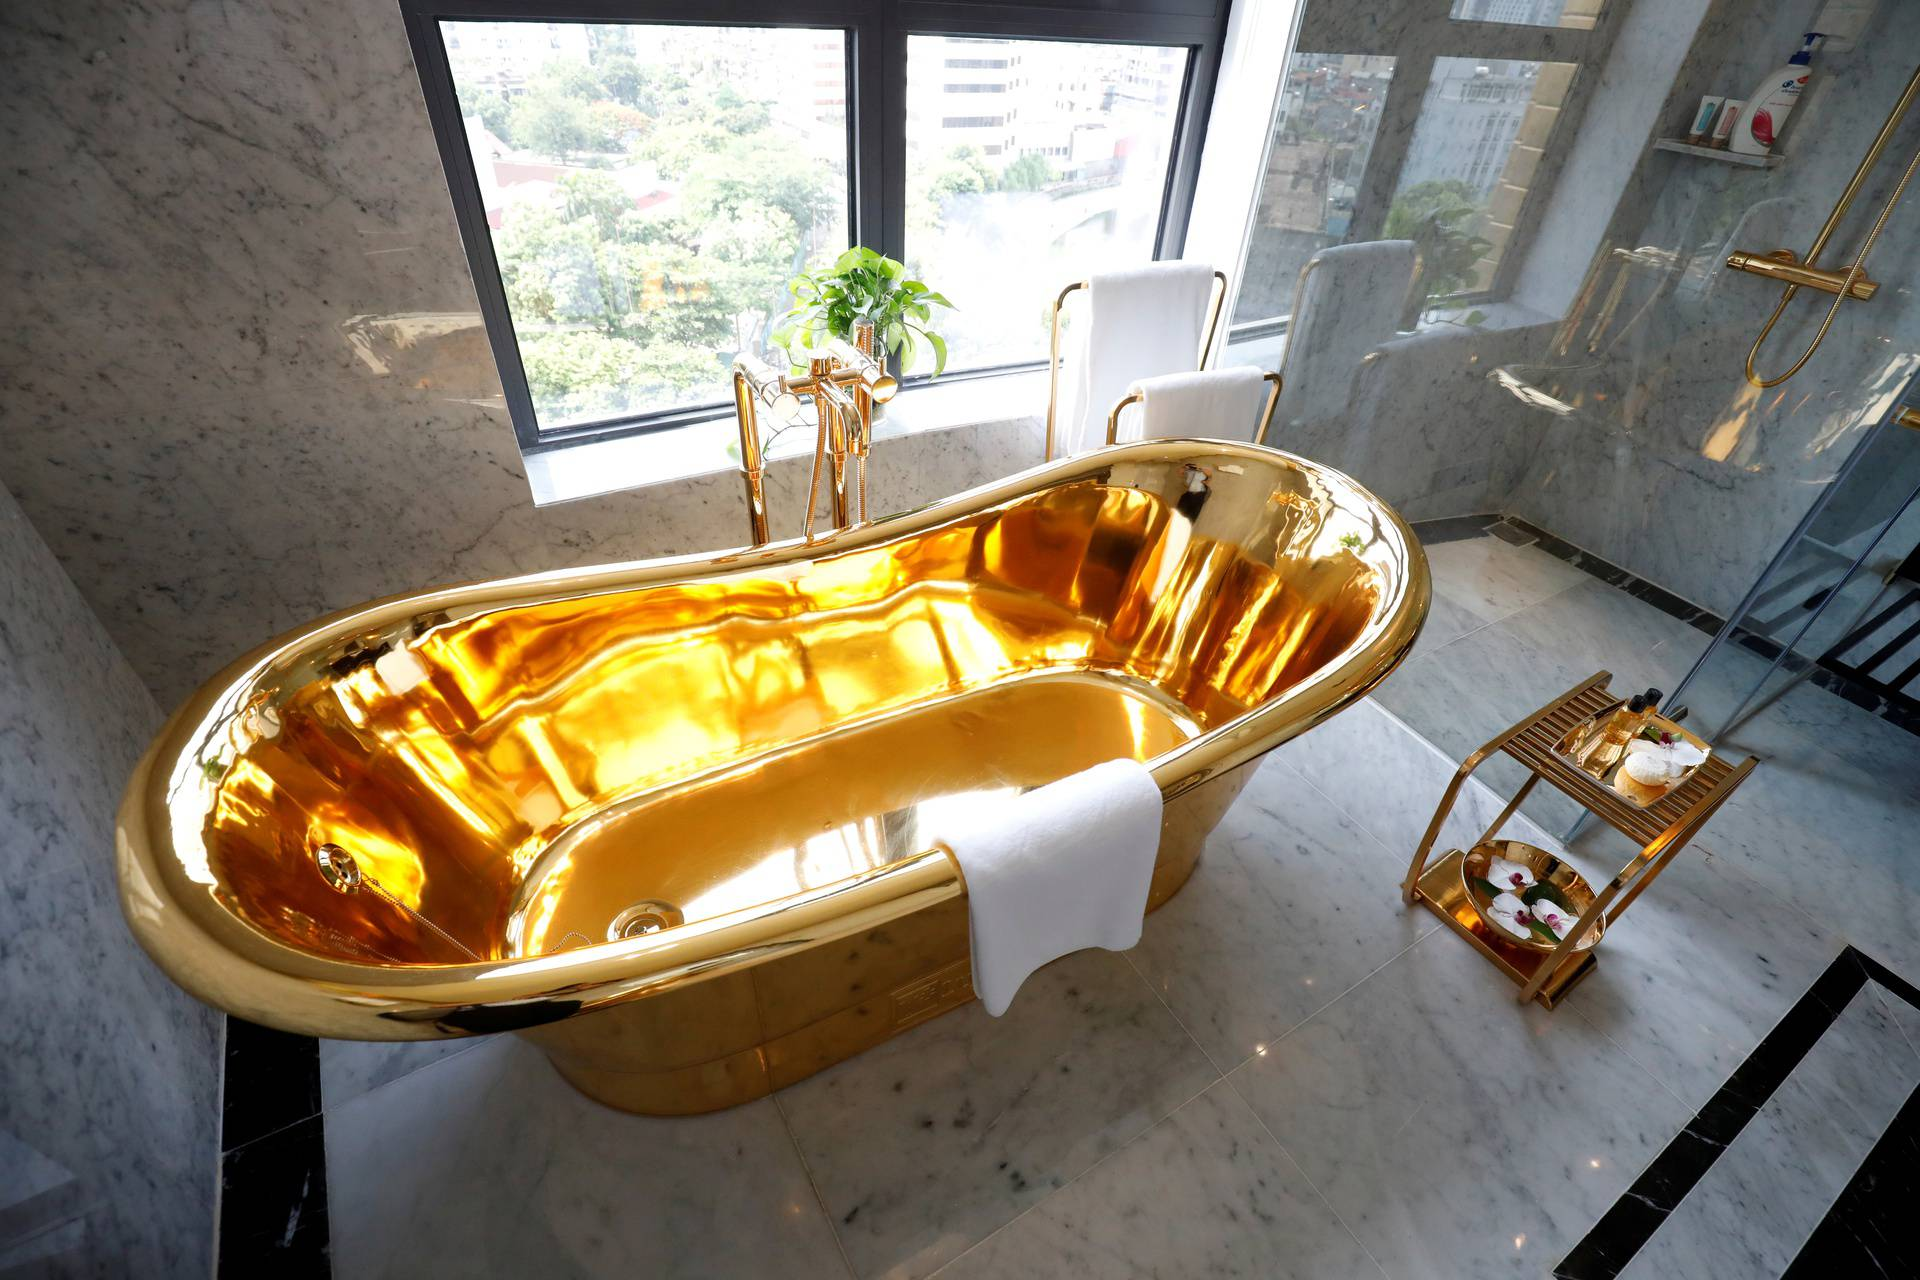 FILE PHOTO: A gold-plated bathtub is seen in the newly inaugurated Dolce Hanoi Golden Lake luxury hotel, after the government eased a nationwide lockdown following the global outbreak of the coronavirus disease (COVID-19), in Hanoi, Vietnam